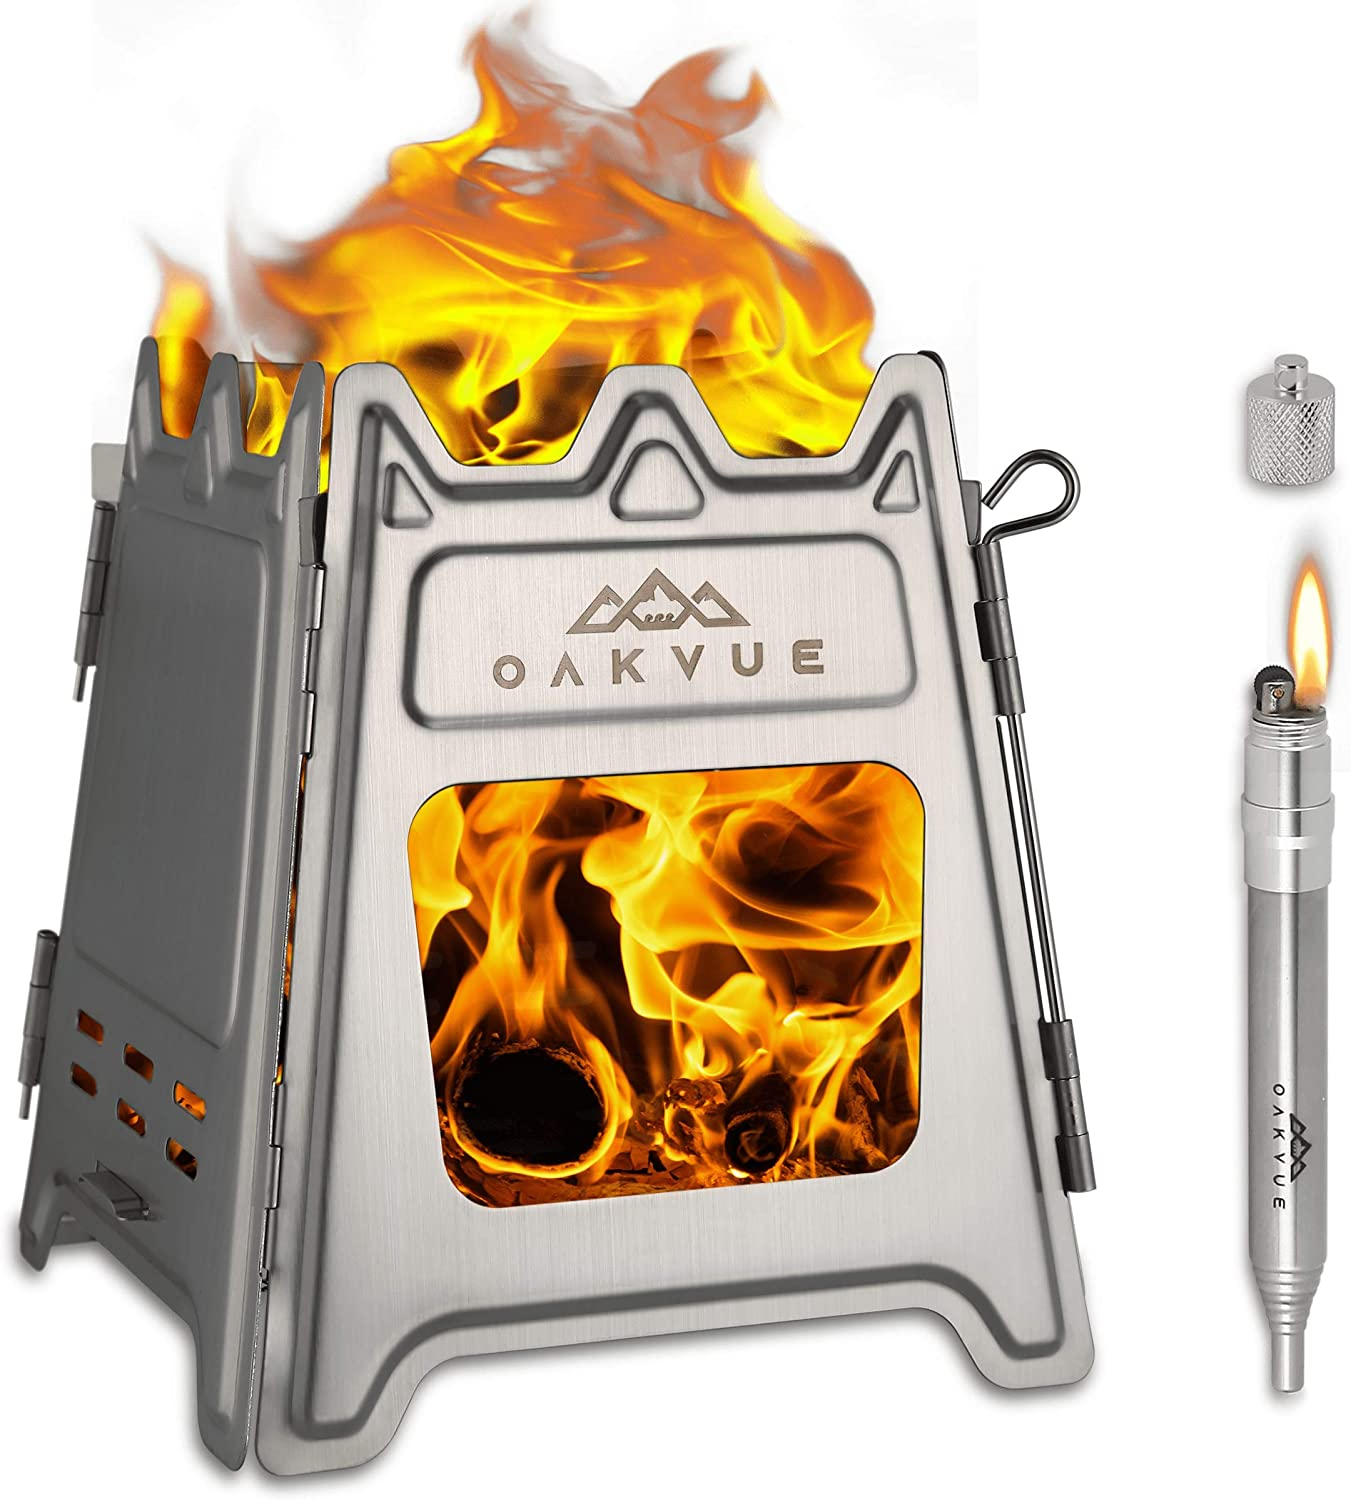 OAKVUE Foldable Camping Stove – Ultralight Backpacking Stove – Stainless Steel Camping Stove – Wood Burner Cooking Stove for Outdoor Activities – Portable Fire Stove – Fire Bellows and Lighter Bonus